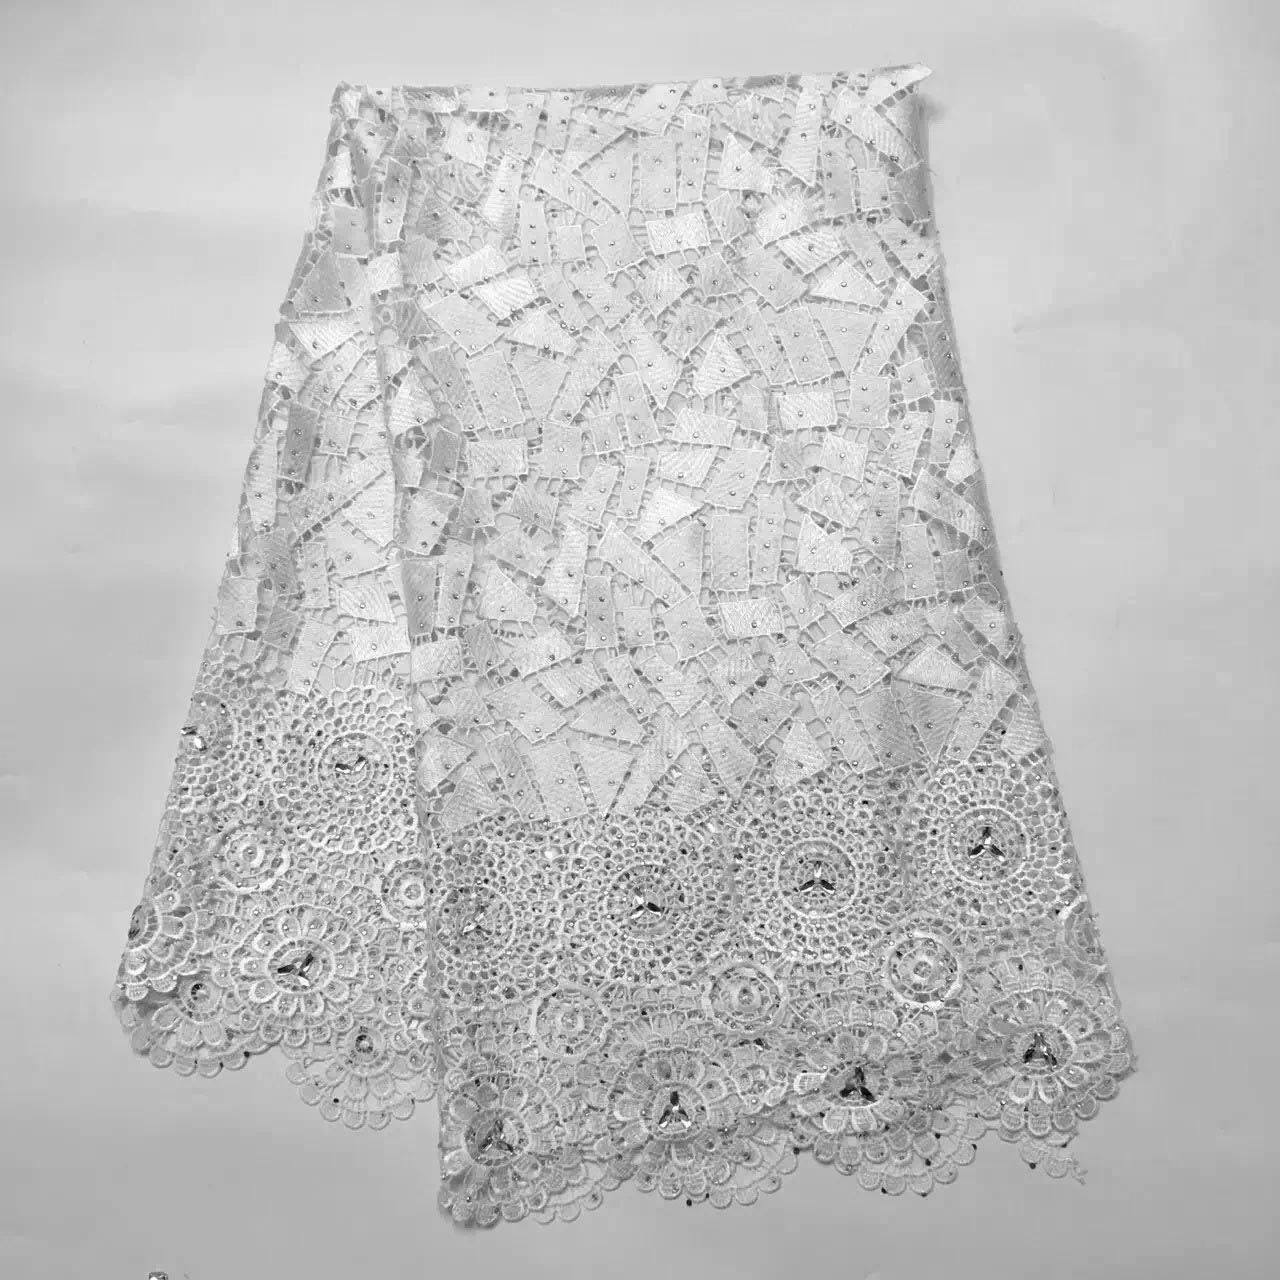 White High quality water soluble african cord lace guipure lace fabric with stones for dress sewing for wedding K R480-in Lace from Home & Garden    1